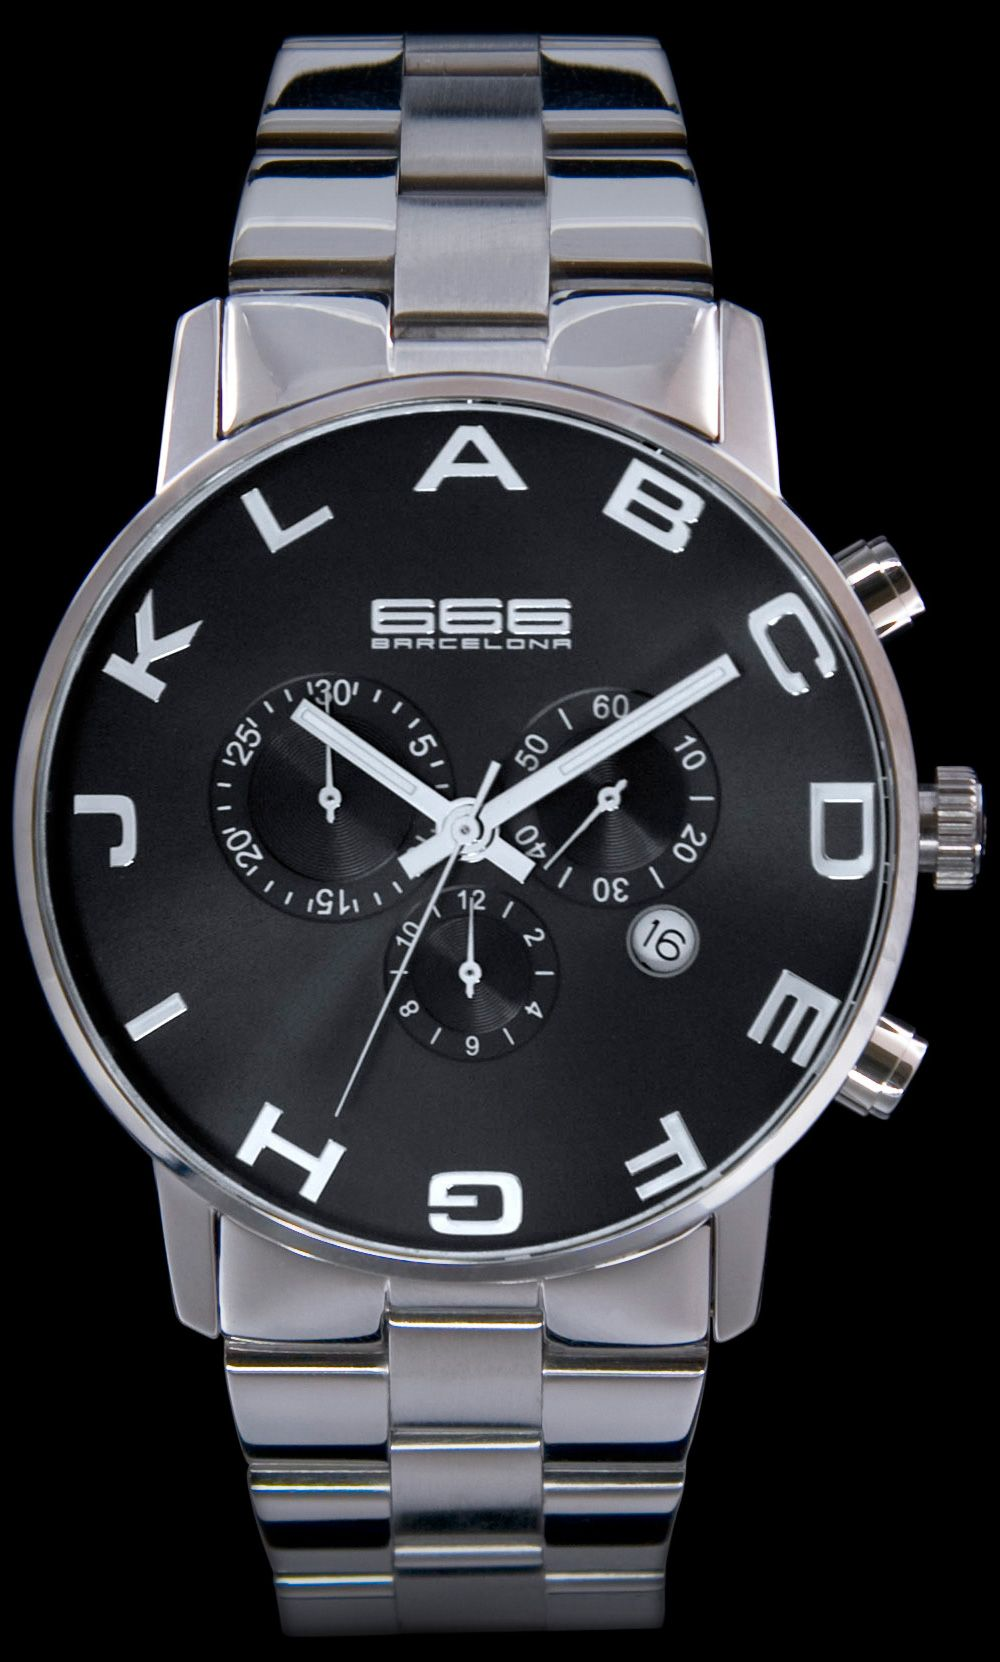 b929f873576c 666 Barcelona Alphabet SS Chrono Black Watch from Watchismo.com Cool Watches